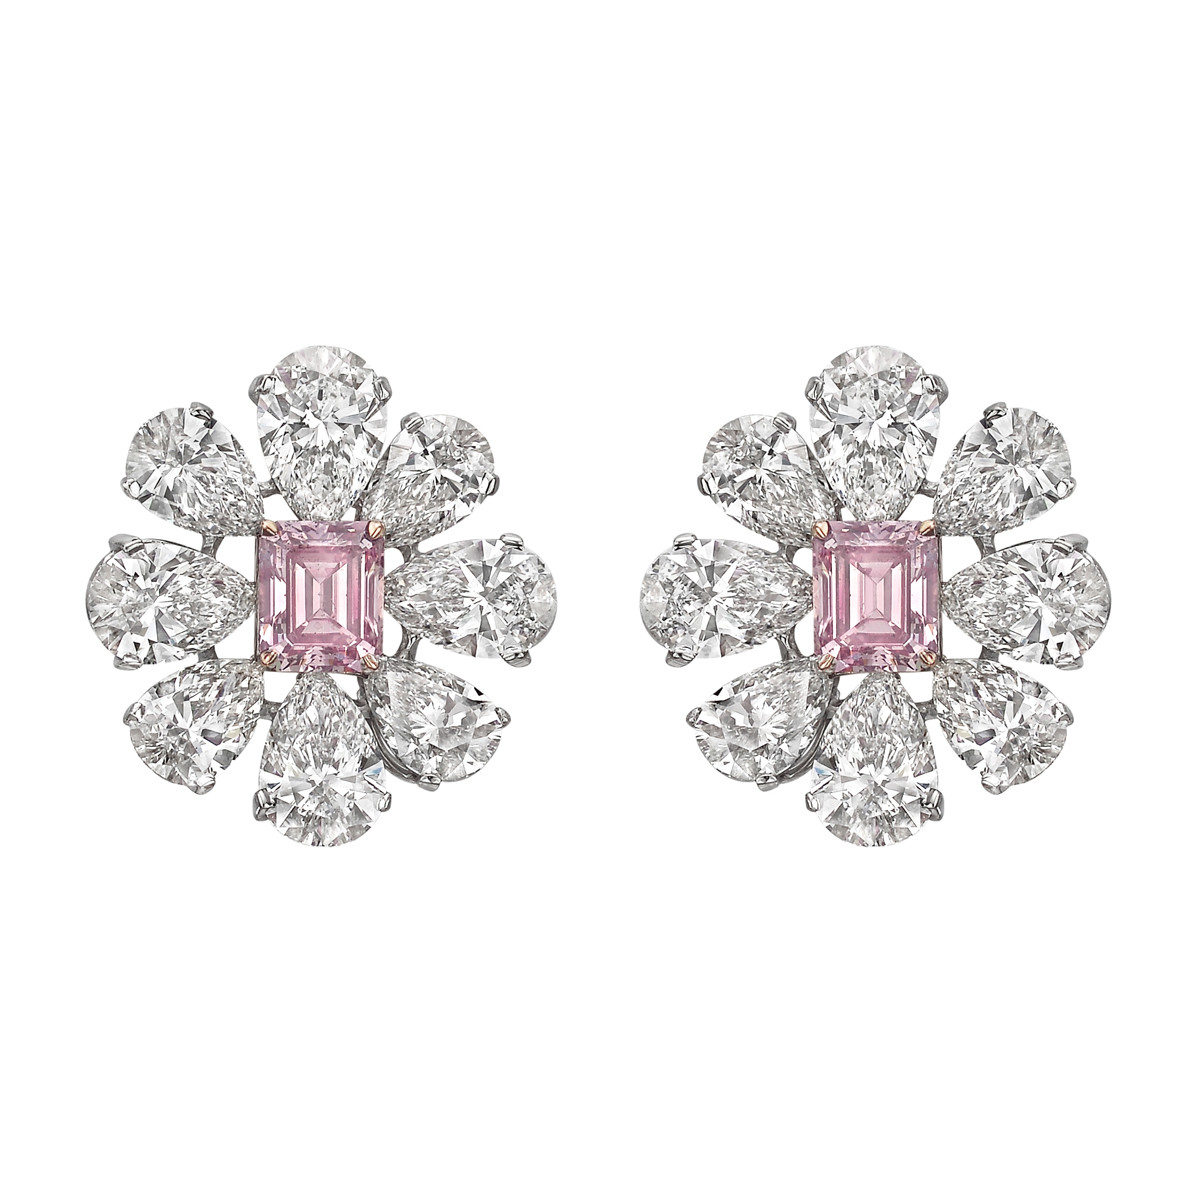 Diamond Flower Cer Earrings Showcasing An Emerald Cut Fancy Intense Pink Surrounded By Eight Colorless Pear Shaped Diamonds